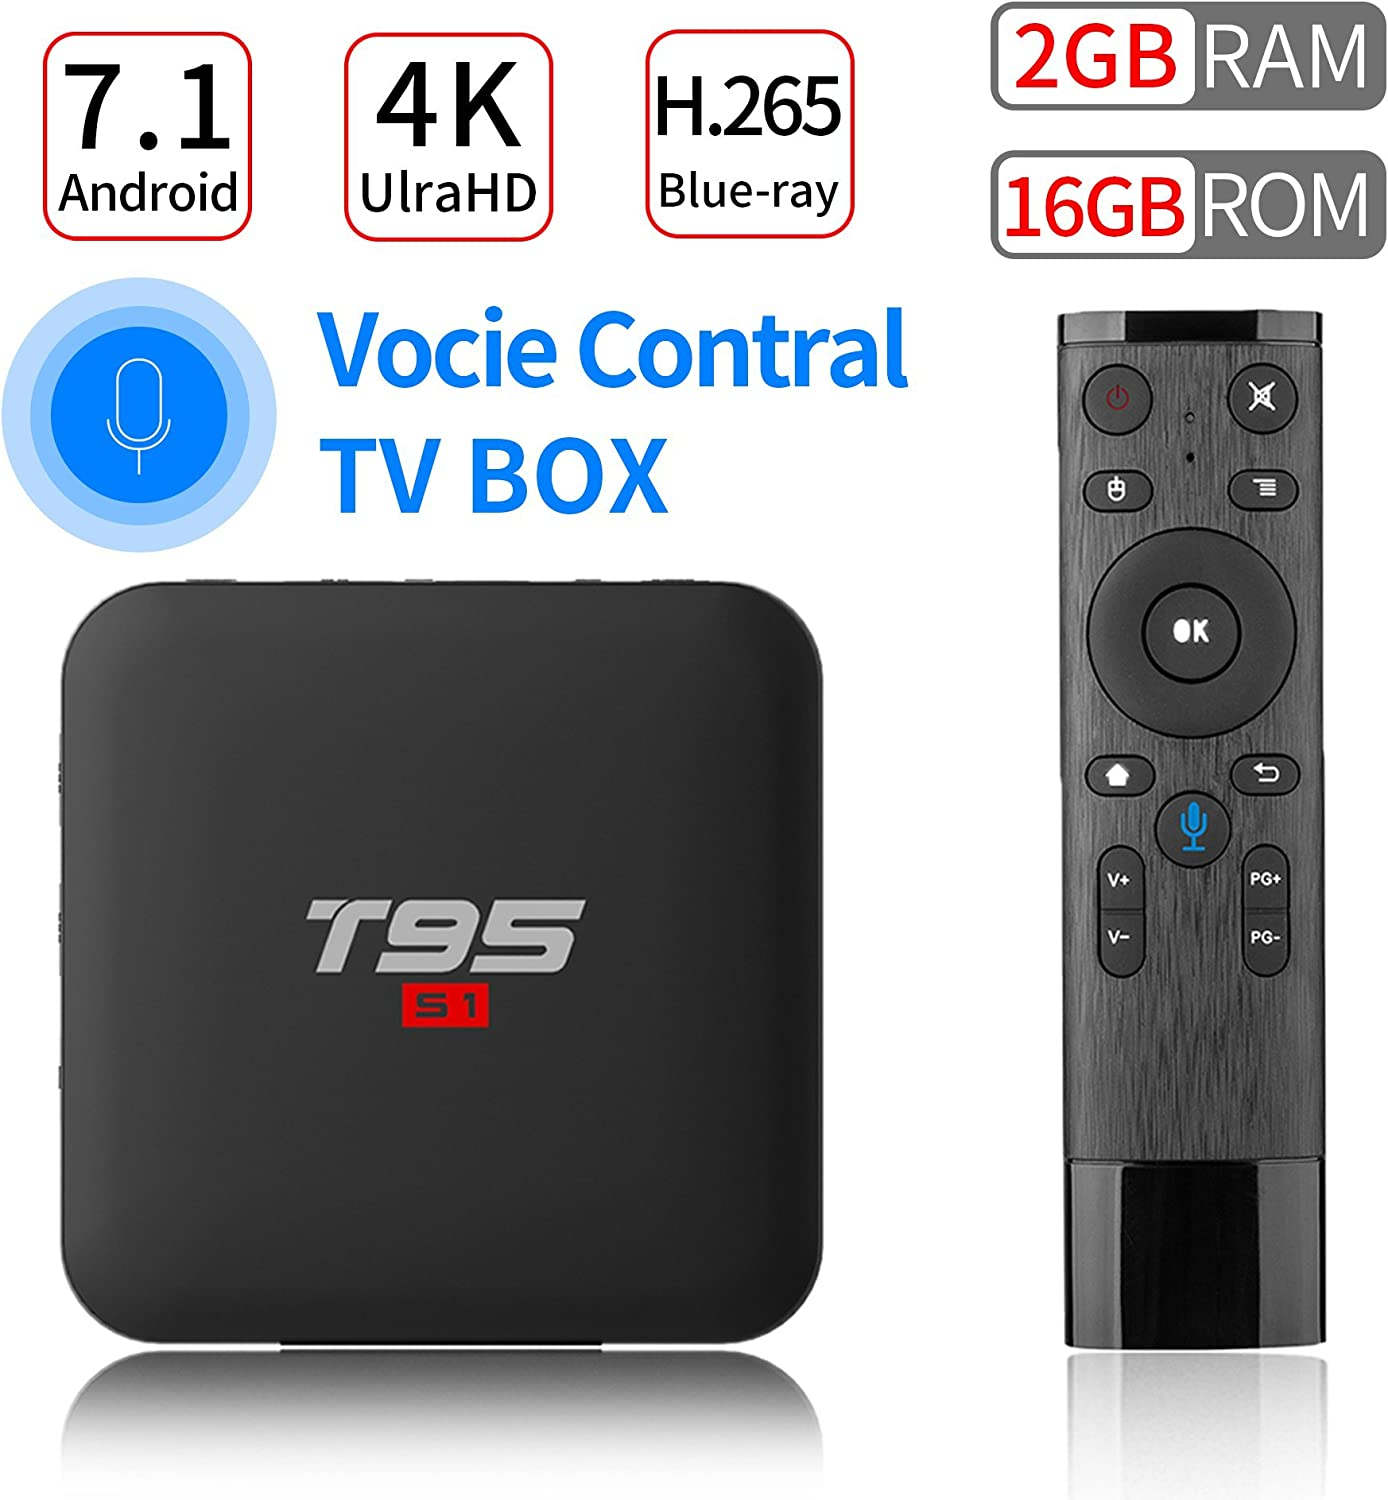 PULIER T95 S1 Control de Voz Android 7.1 TV Box 2GB RAM 16GB ROM S905W Quad Core Support 1080P 4K Ultra-HD H.265 BLU-Ray HDMI Smart TV Media Player 2018: Amazon.es: Electrónica